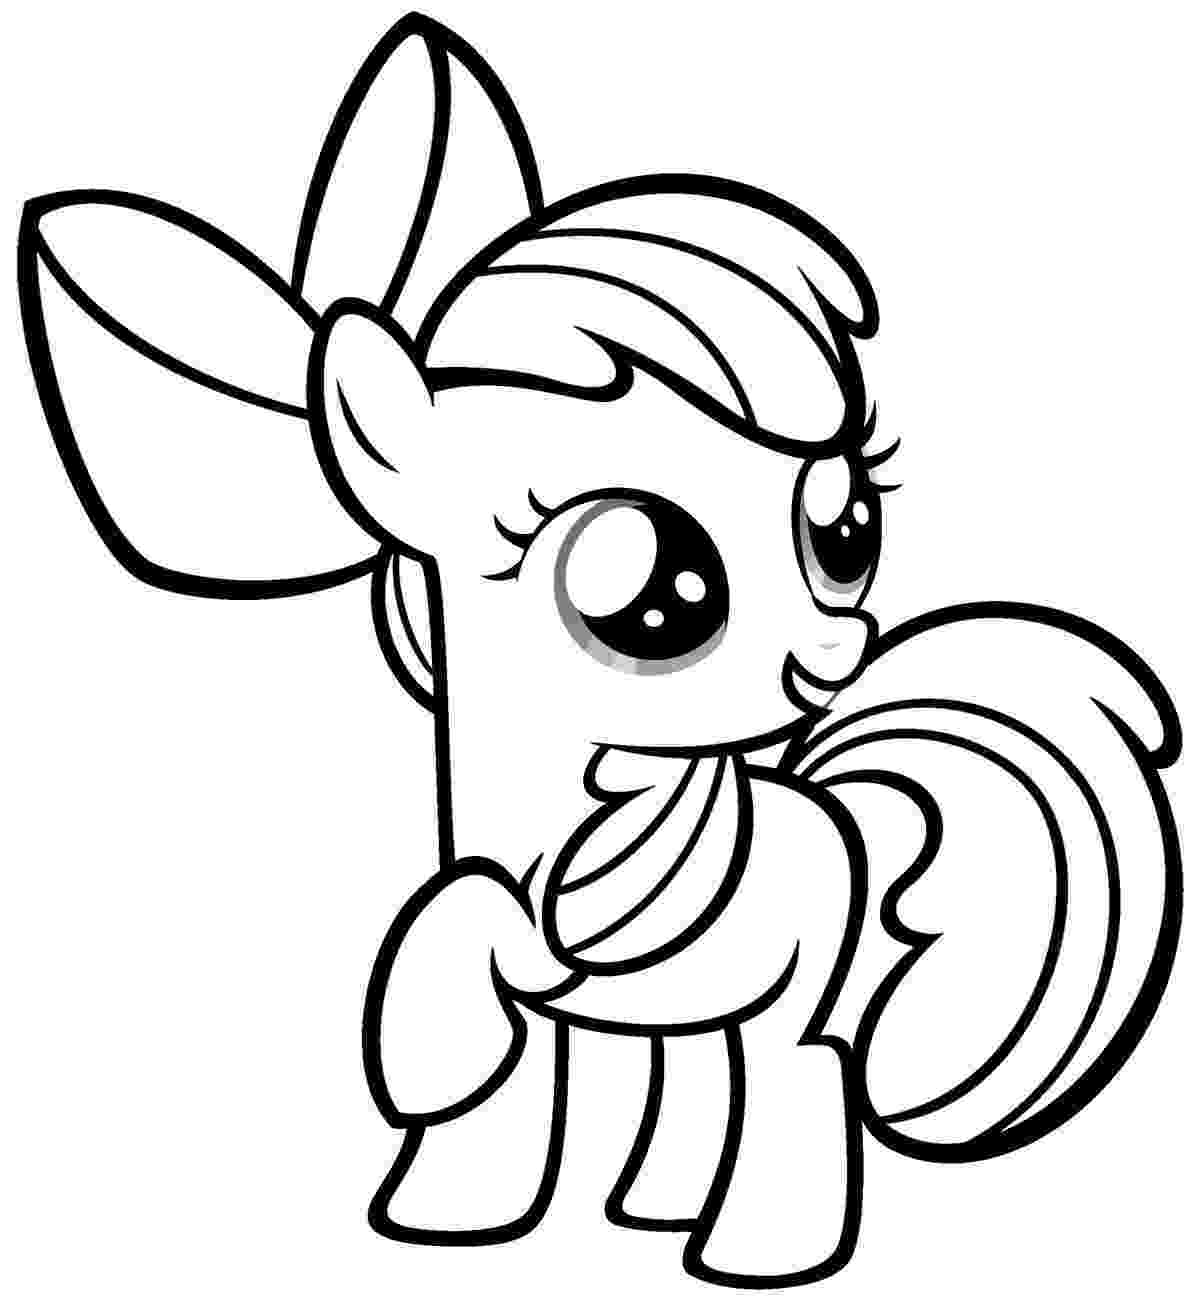 mlp pics learn how to draw filly guides from my little pony pics mlp